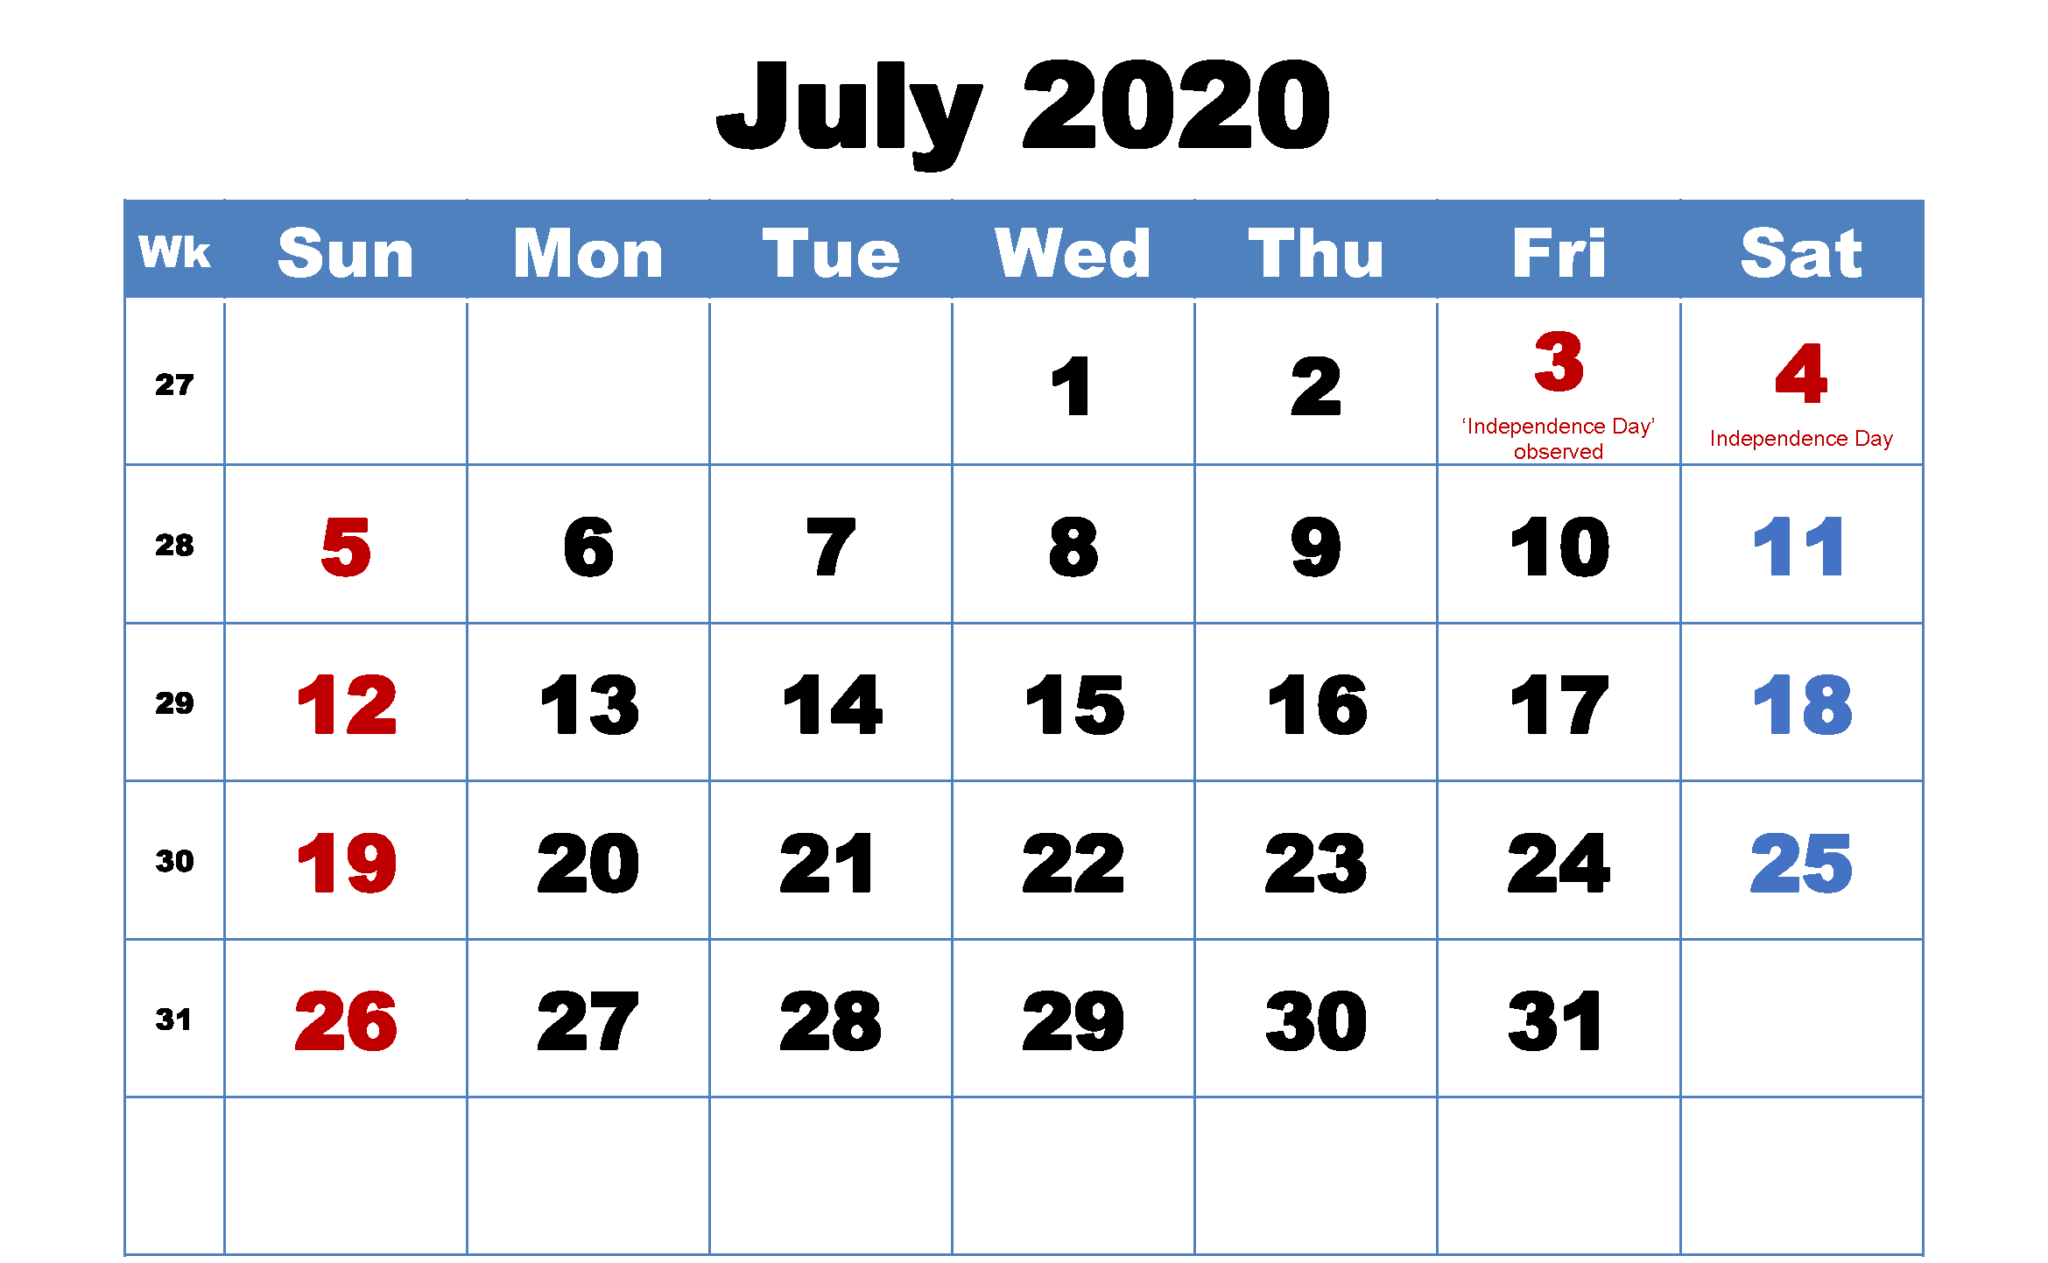 July 2020 Holidays For Singapore